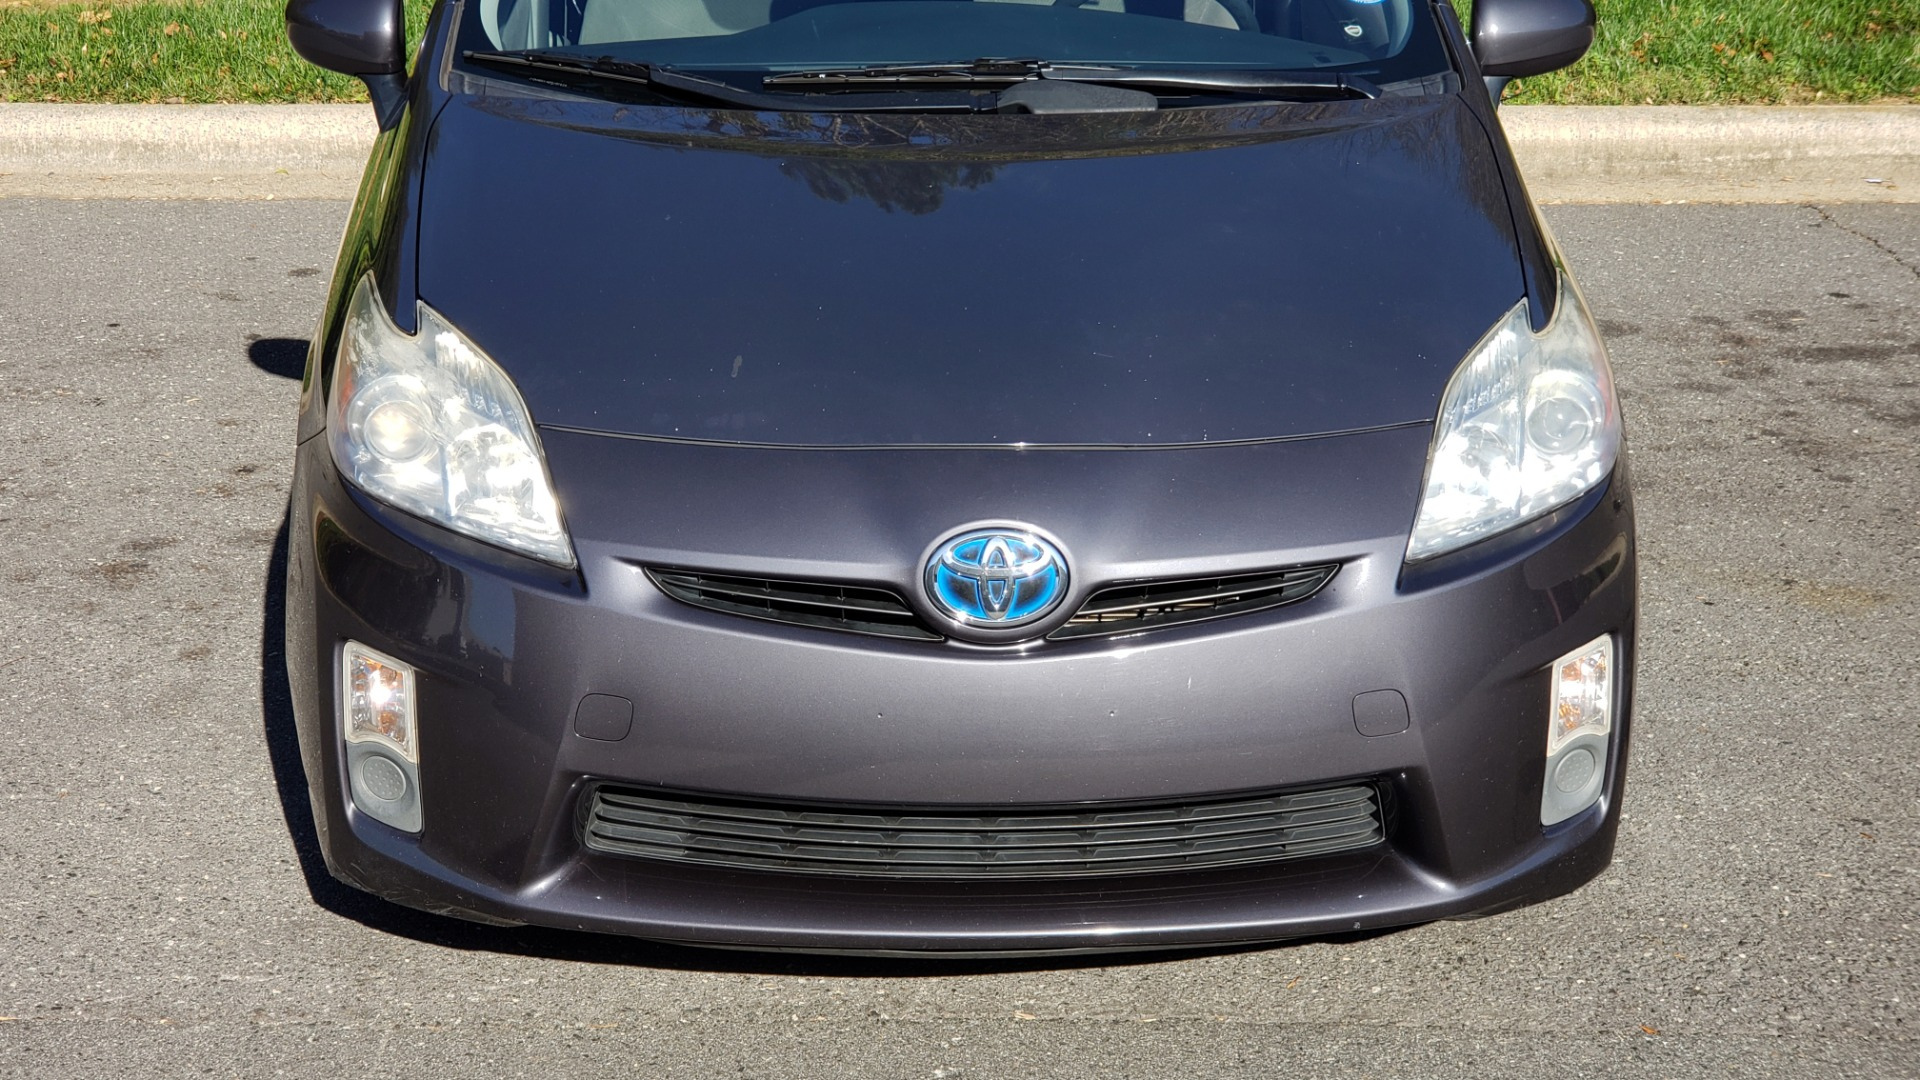 Used 2011 Toyota PRIUS ONE / HYBRID / 5-DOOR / HATCHBACK / 50MPG for sale Sold at Formula Imports in Charlotte NC 28227 22